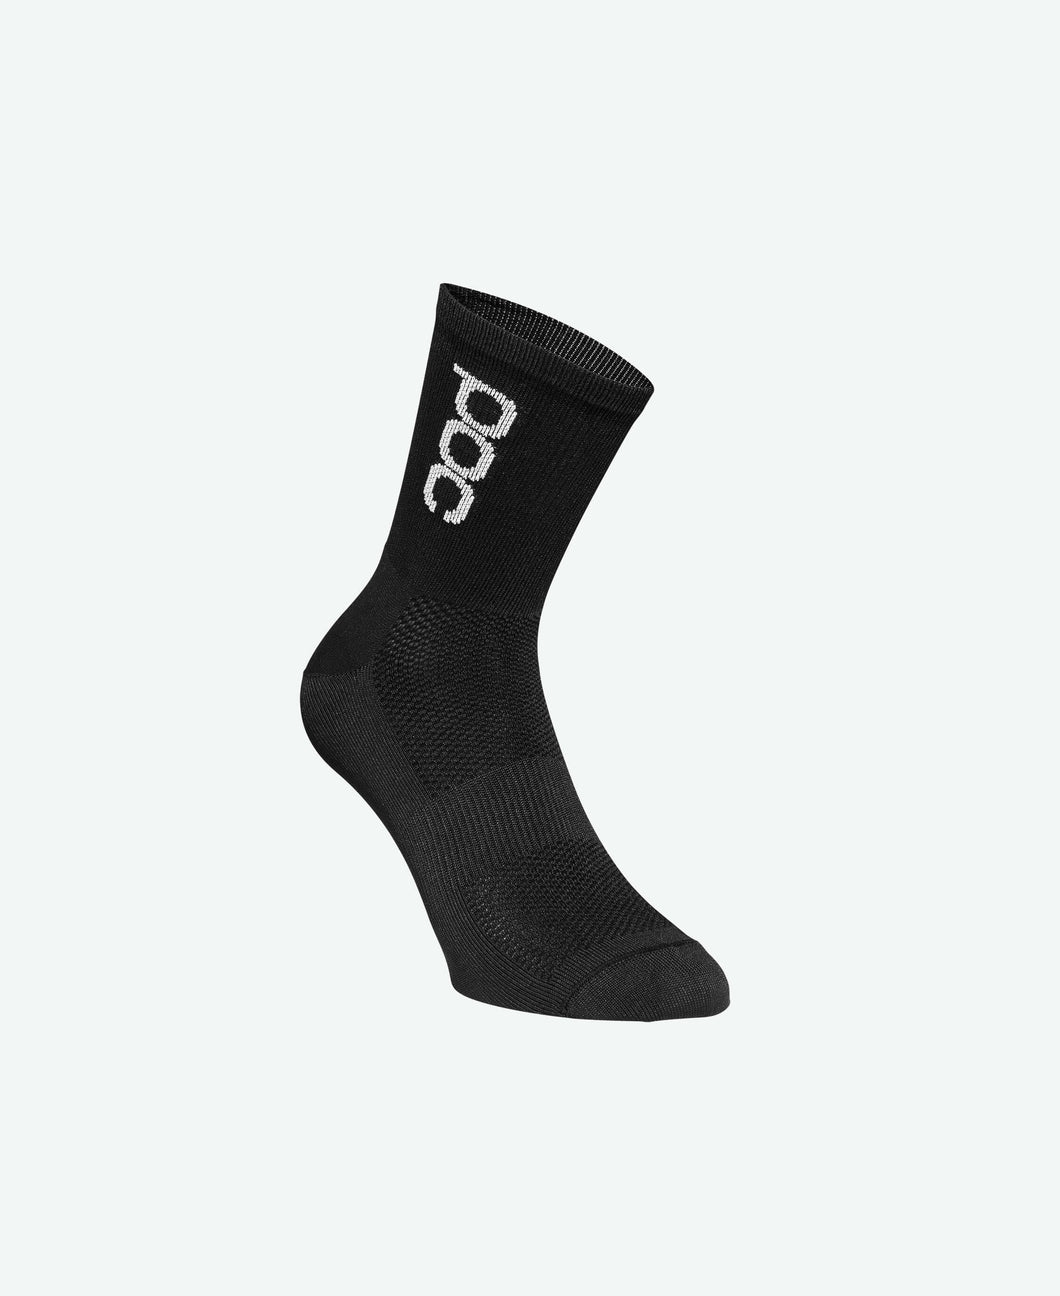 ソックス Essential Road Lt Sock - Uranium Black [ユニセックス] 65120-1002 - STYLE BIKE ONLINE SHOP